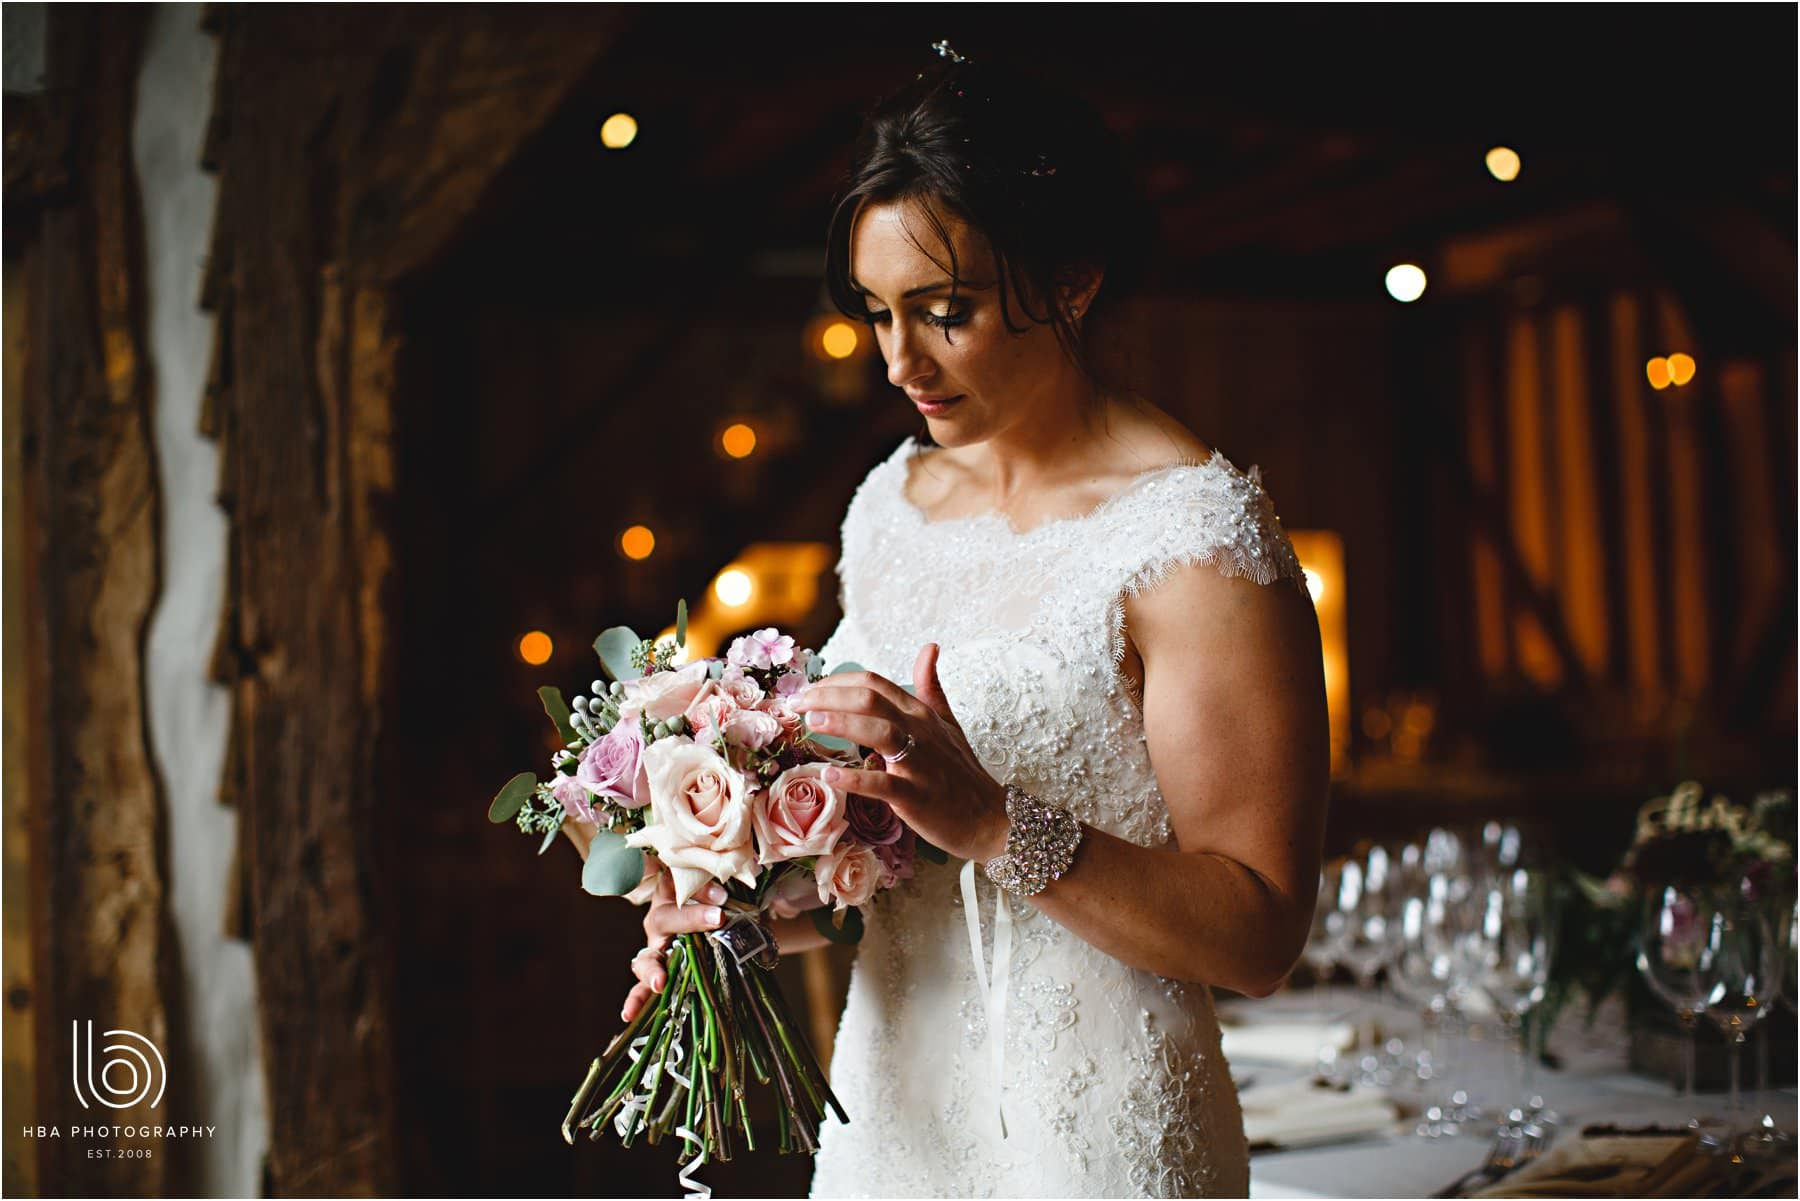 the bride looking at her wedding bouquet